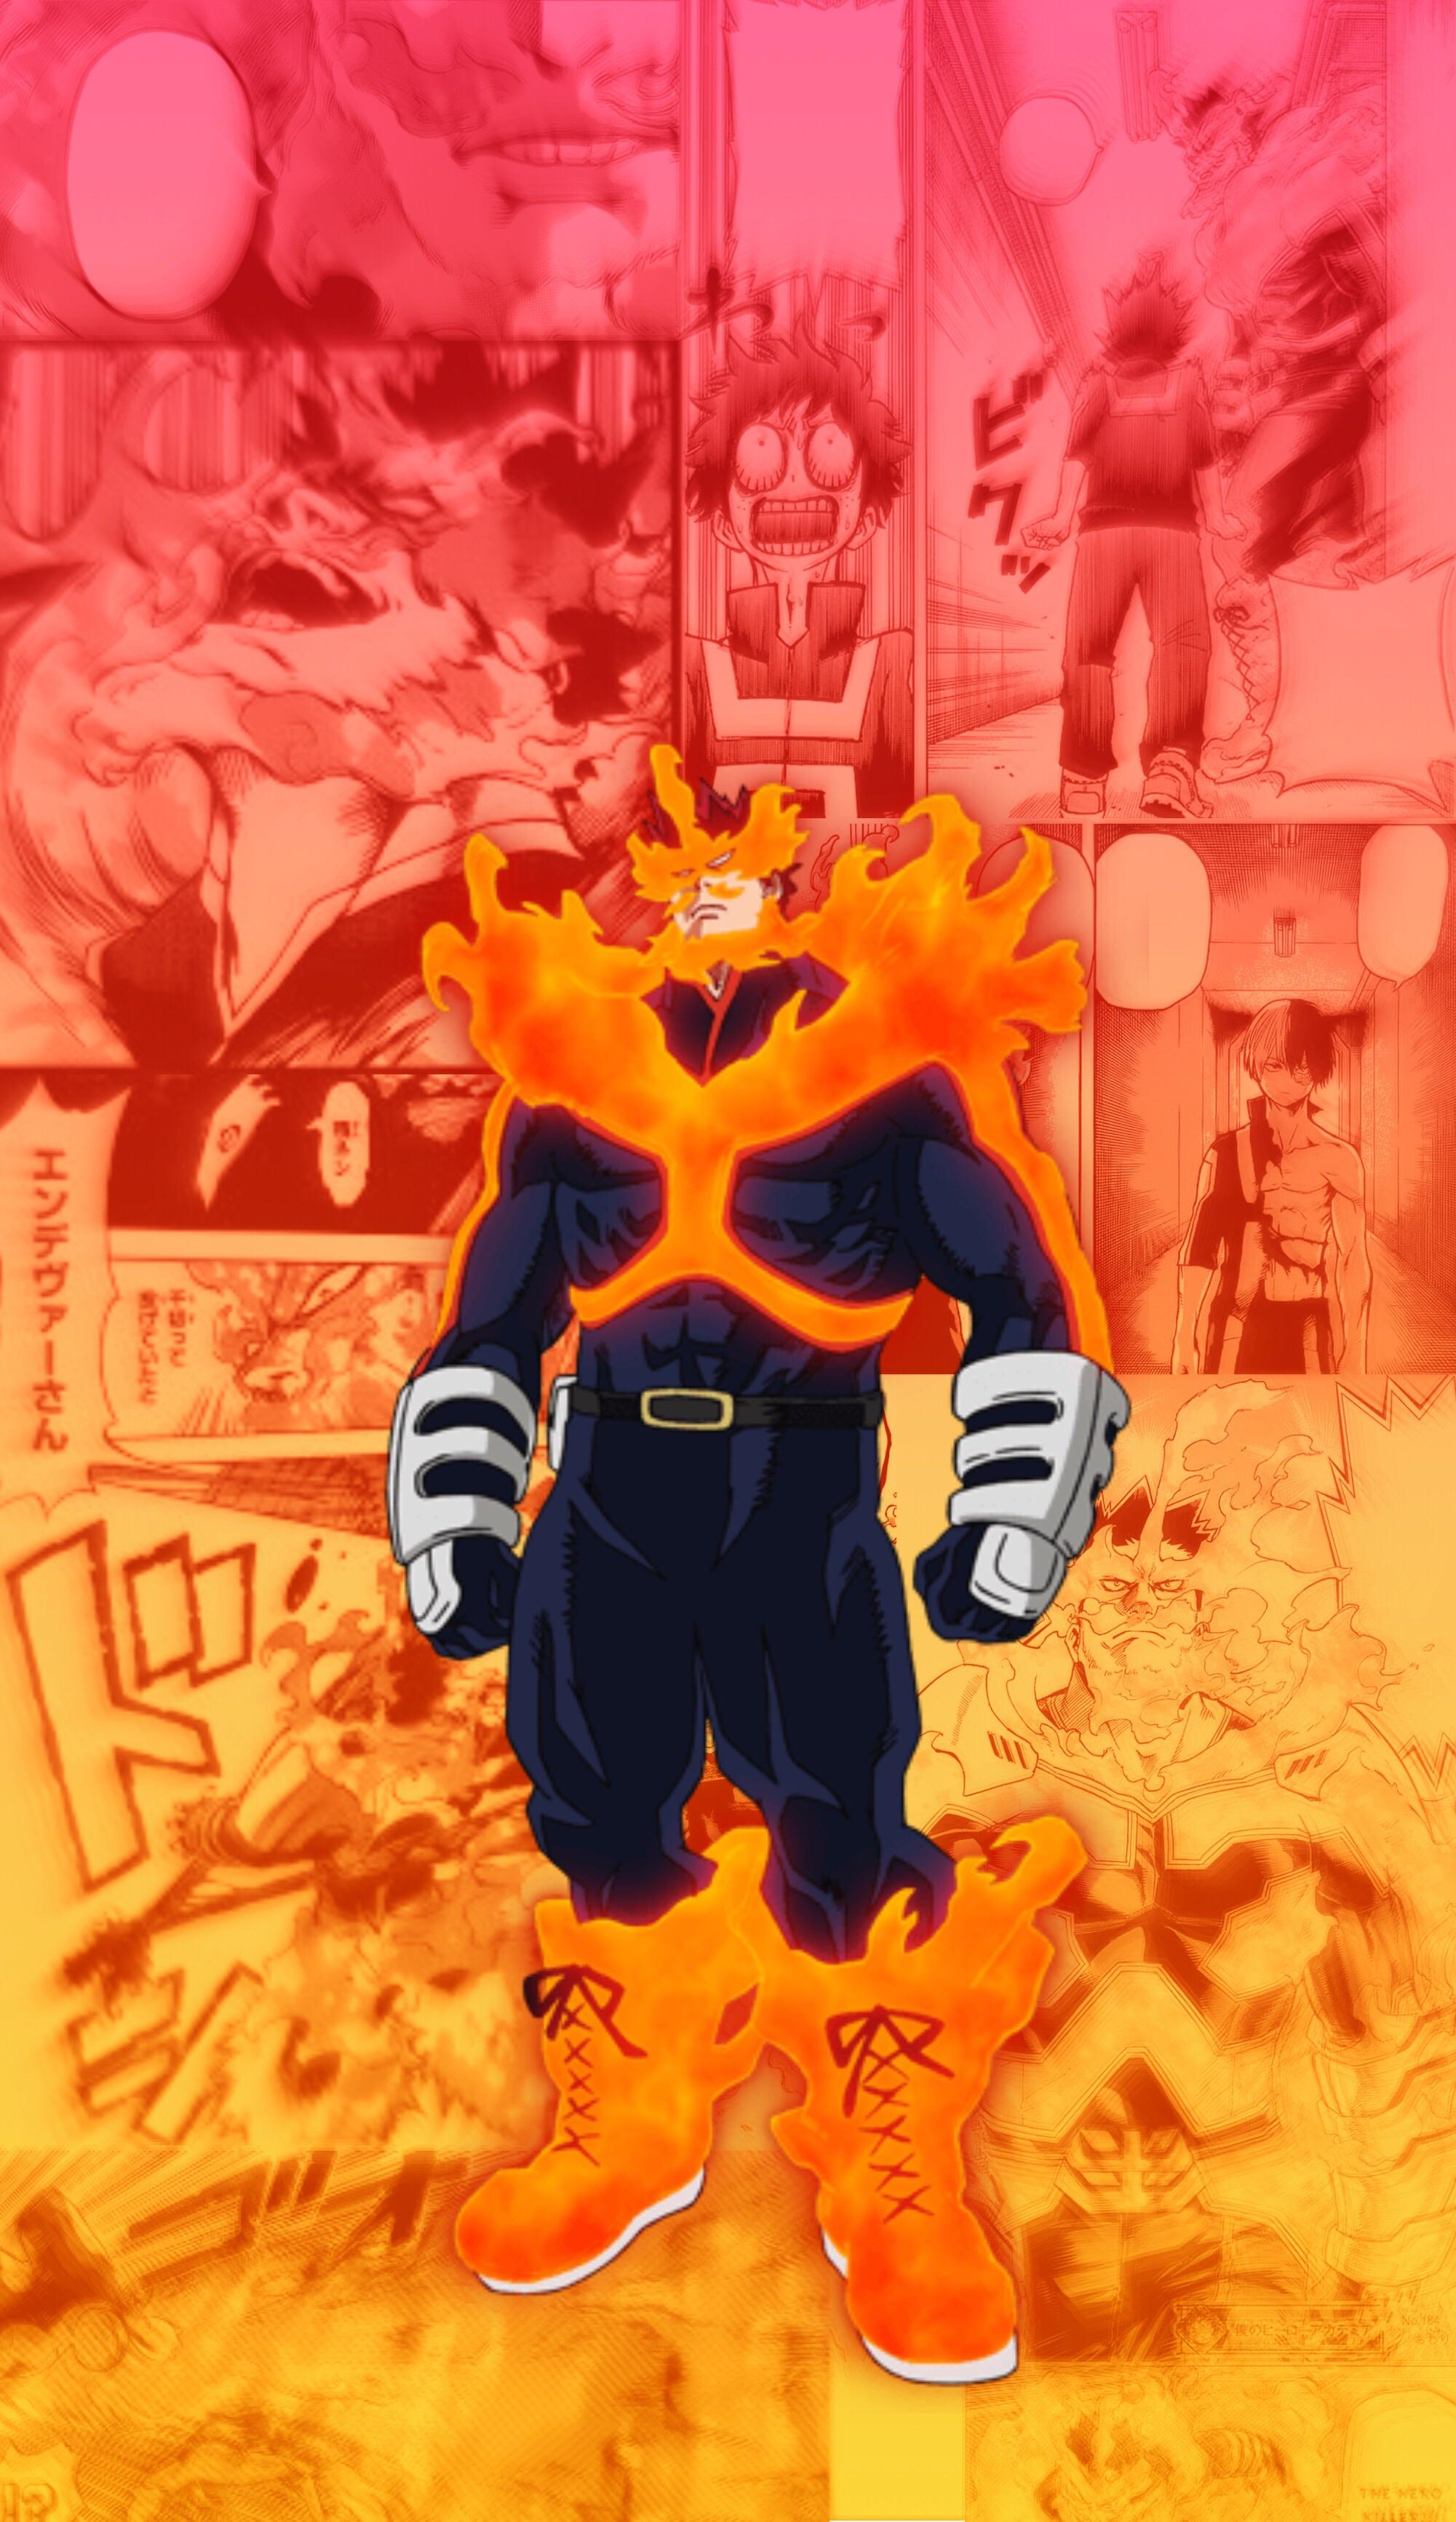 ENDEAVOR PHONE WALLPAPER